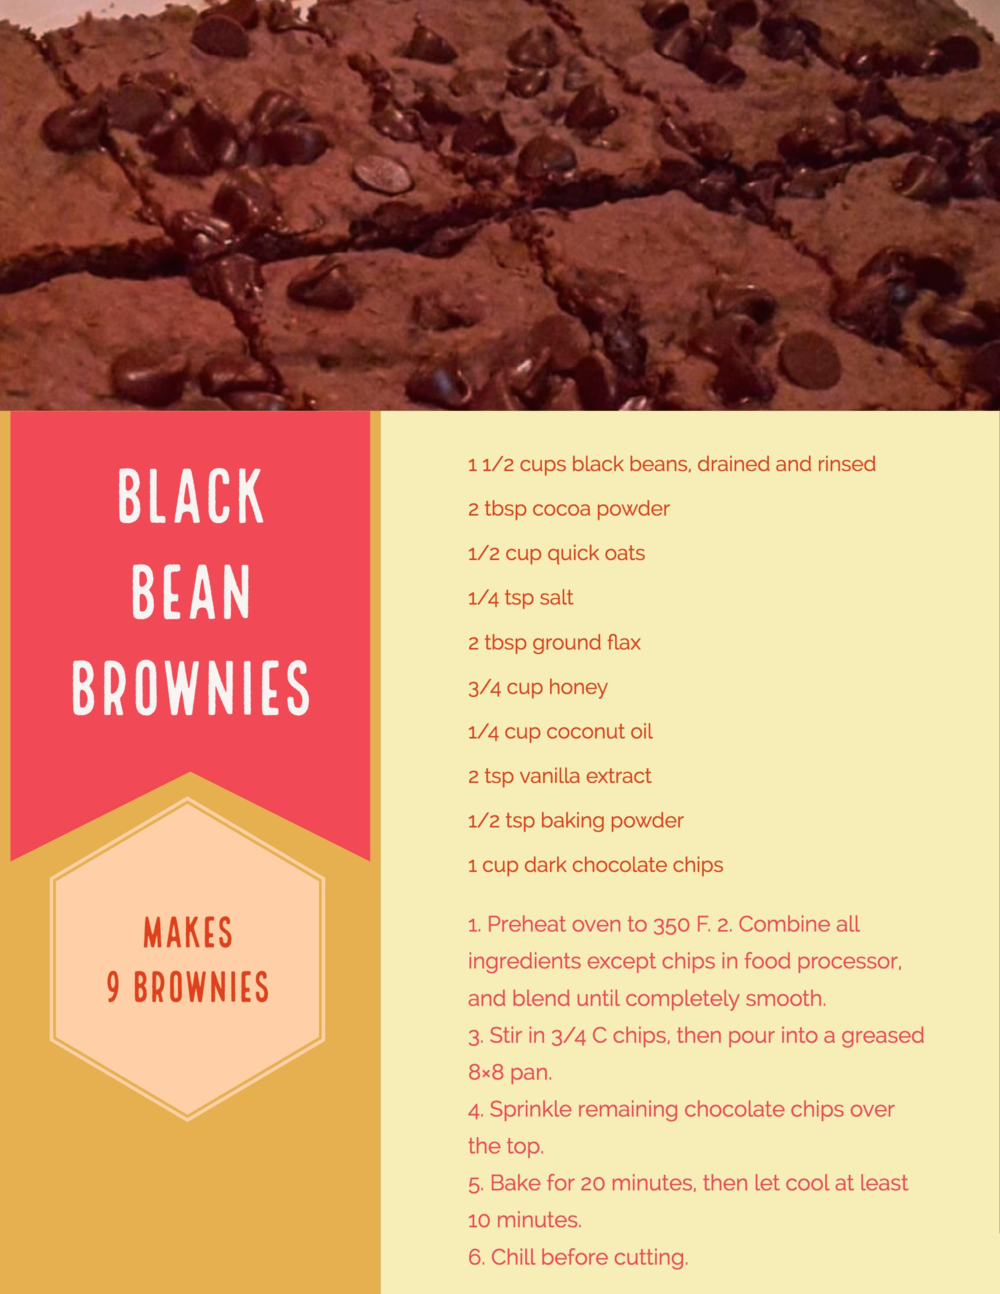 Black Bean Brownies - Yields 9 browniesAdapted from Chocolate Covered KatieIngredients1 1/2 cups black beans, drained and rinsed well2 tbsp cocoa powder1/2 cup quick oats (rolled oats pulsed in a food processor works well too)1/4 tsp pink Himalayan salt1 cup pure honey (maple syrup if you're doing vegan)2 tbsp ground flax seeds1/4 cup virgin coconut oil2 tsp pure vanilla extract1/2 tsp baking powder1 cup dark chocolate chipsPreparation1. Preheat oven to 350 F.2. Combine all ingredients except chips in a food processor and blend until completely smooth.3. Stir in 3/4 cup of the chocolate chips, then pour into a greased 13 x 9 pan (or line it with parchment paper for easy clean up).4. Sprinkle the remaining 1/4 cup of chocolate chips over the top. For a smooth and uniform look, stick the pointy end of the chip directly into the batter. 5. Bake for about 20 minutes, then let cool at least 10 minutes before trying to cut. It helps to chill them overnight before cutting.Enjoy!